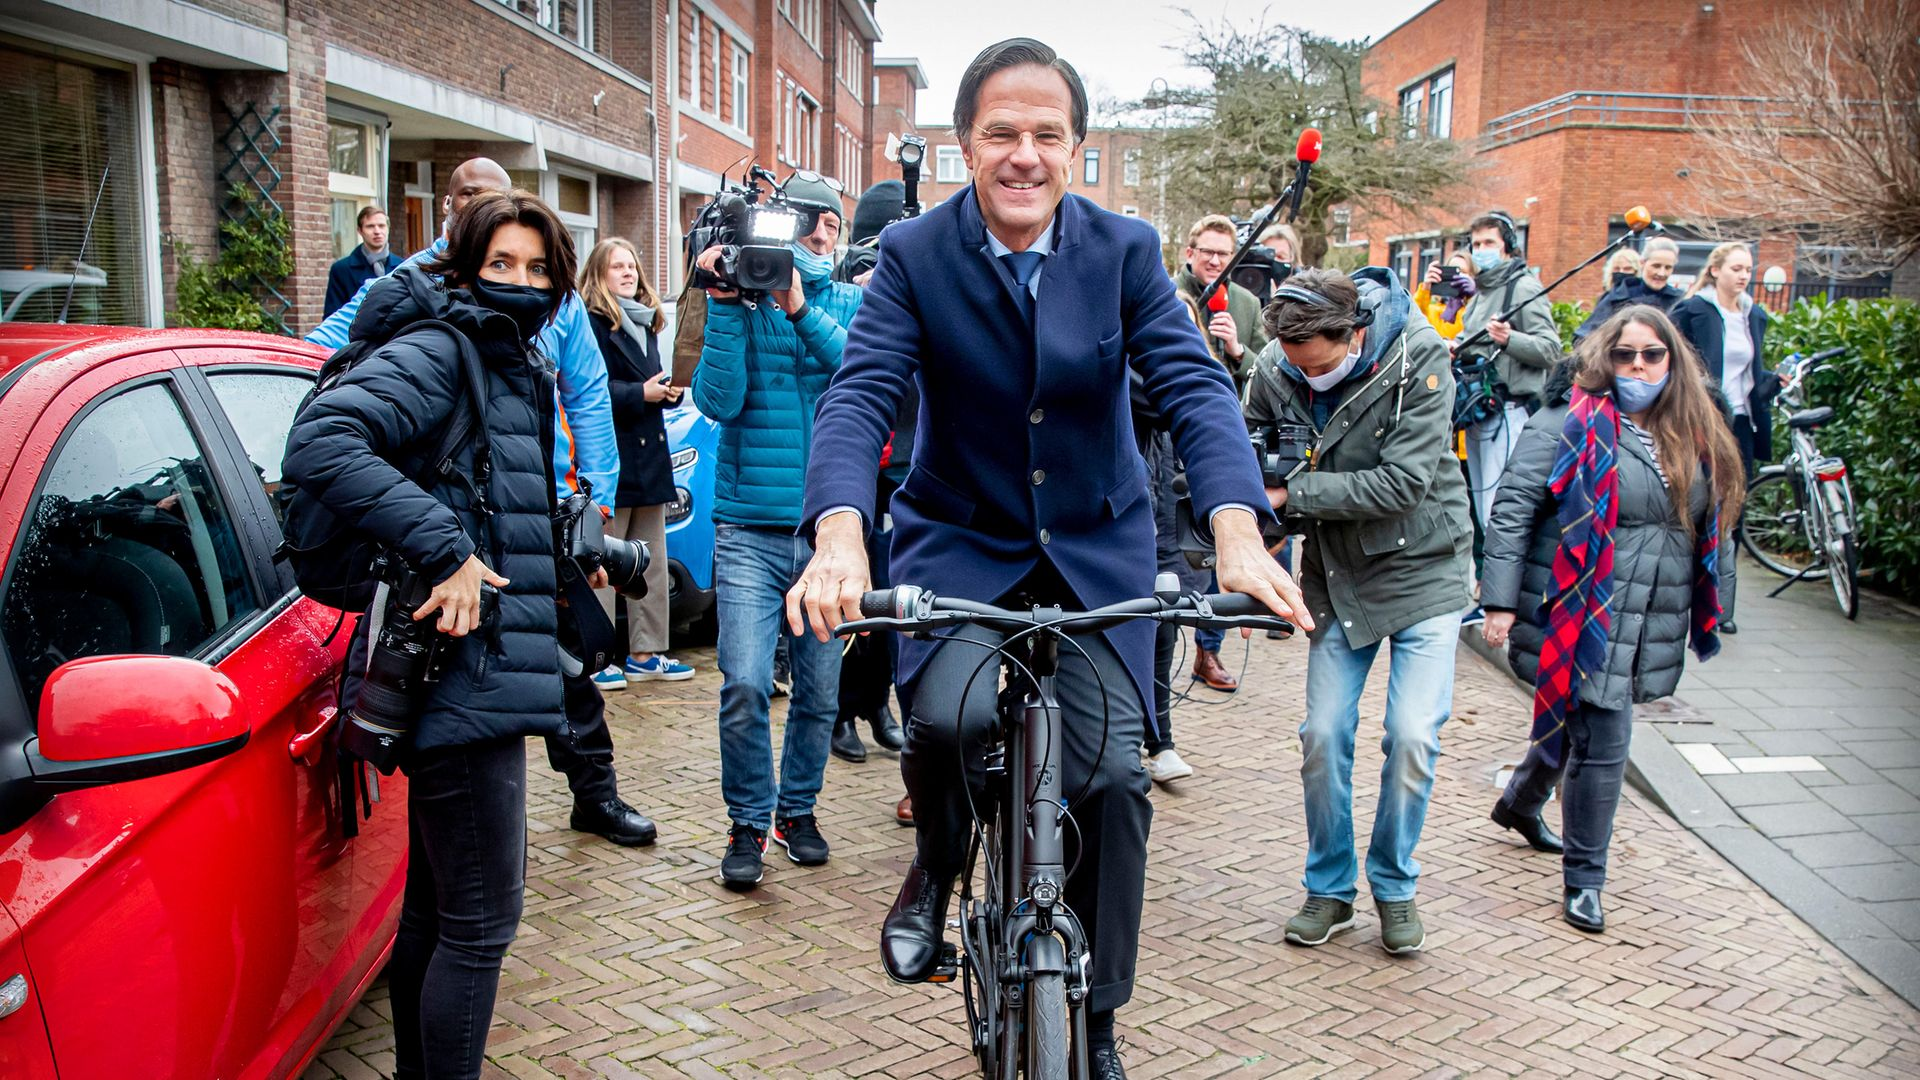 Mark Rutte cycles to the polling station in the recent Netherlands election, which was won by his party - Credit: Getty Images